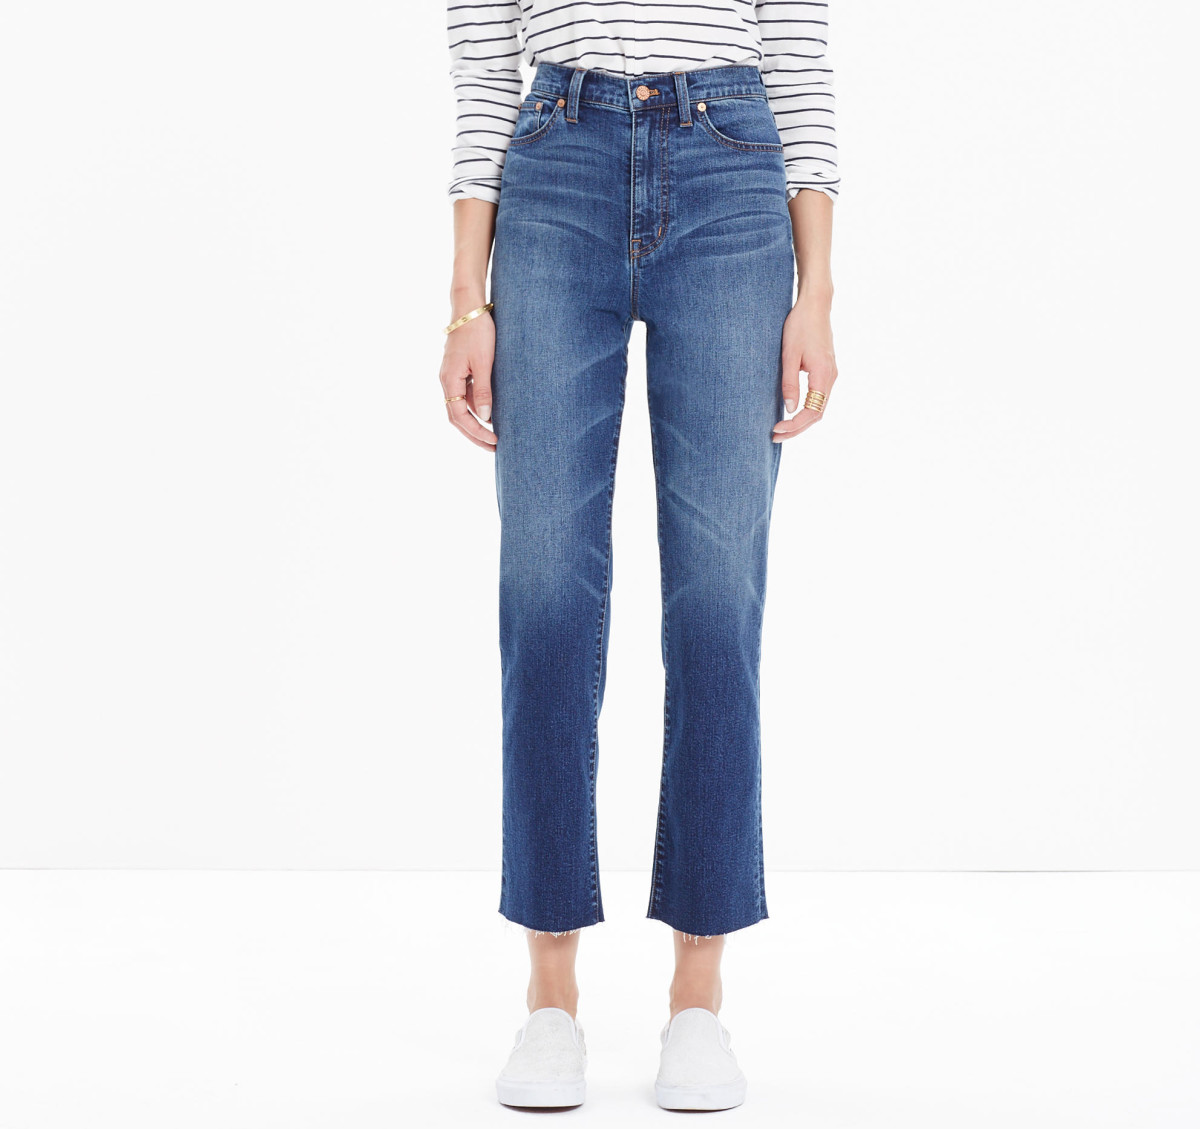 "Madewell 11"" high riser crop flares, $135, available at Madewell."